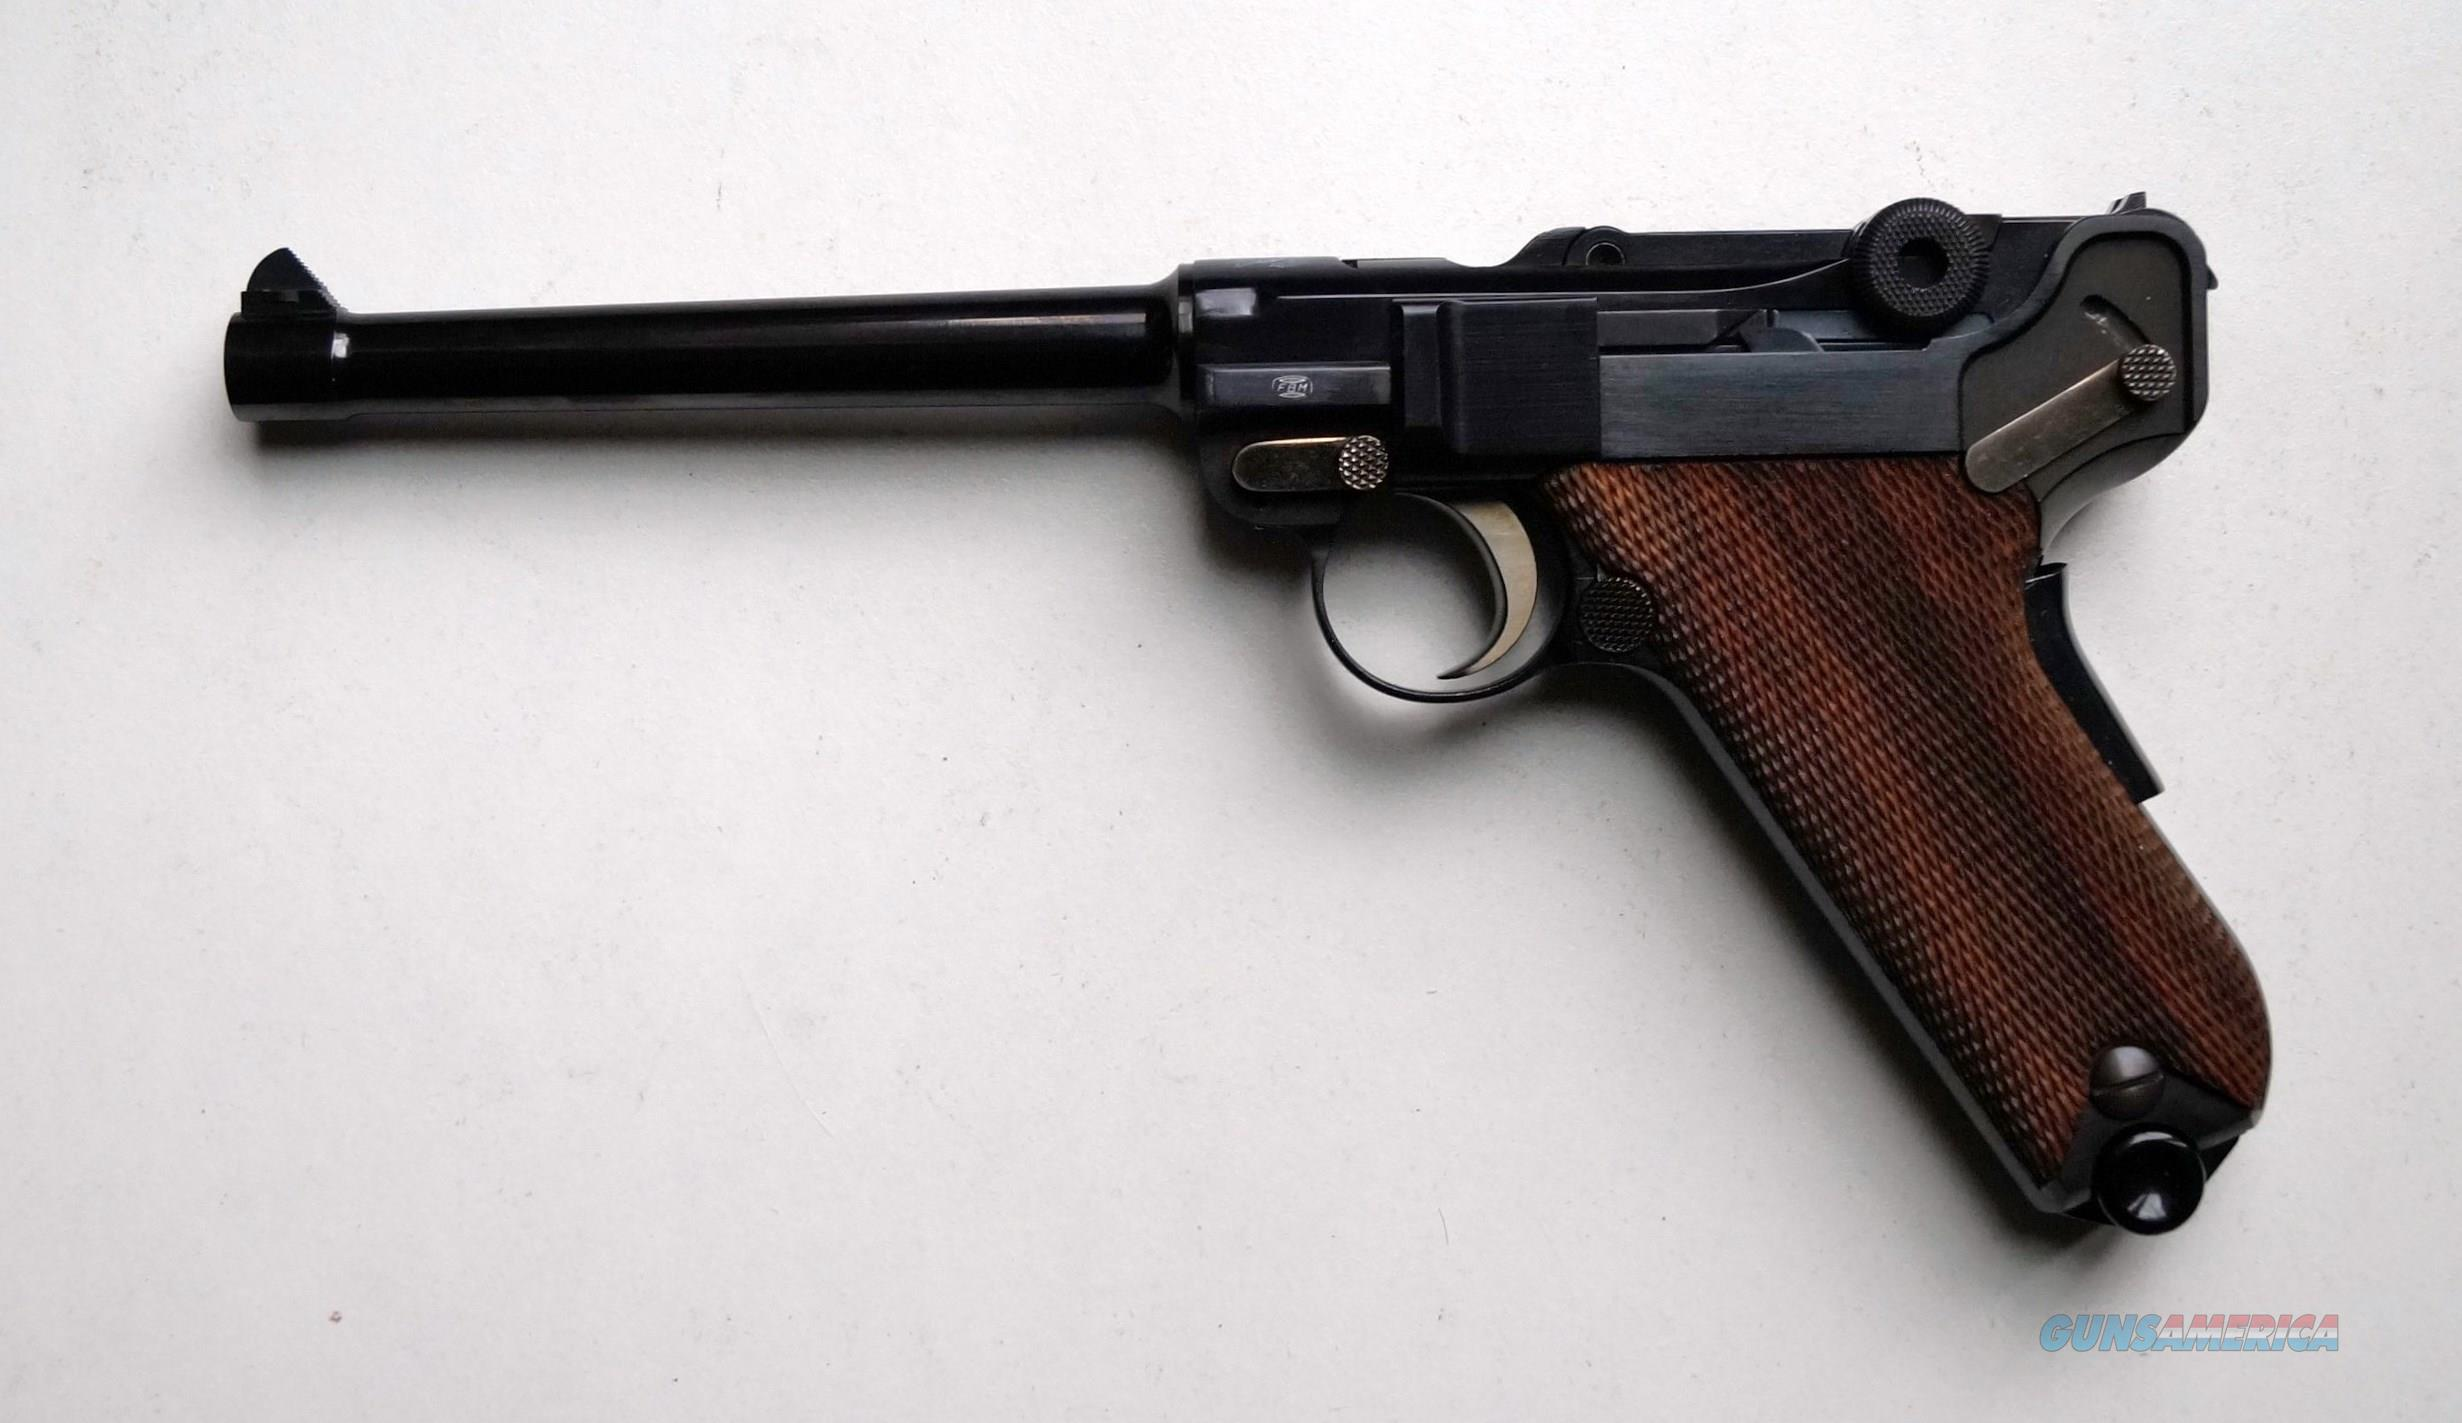 "MAUSER INTERARMS AMERICAN EAGLE WITH 6"" BARREL - MINT  Guns > Pistols > Interarms Pistols"